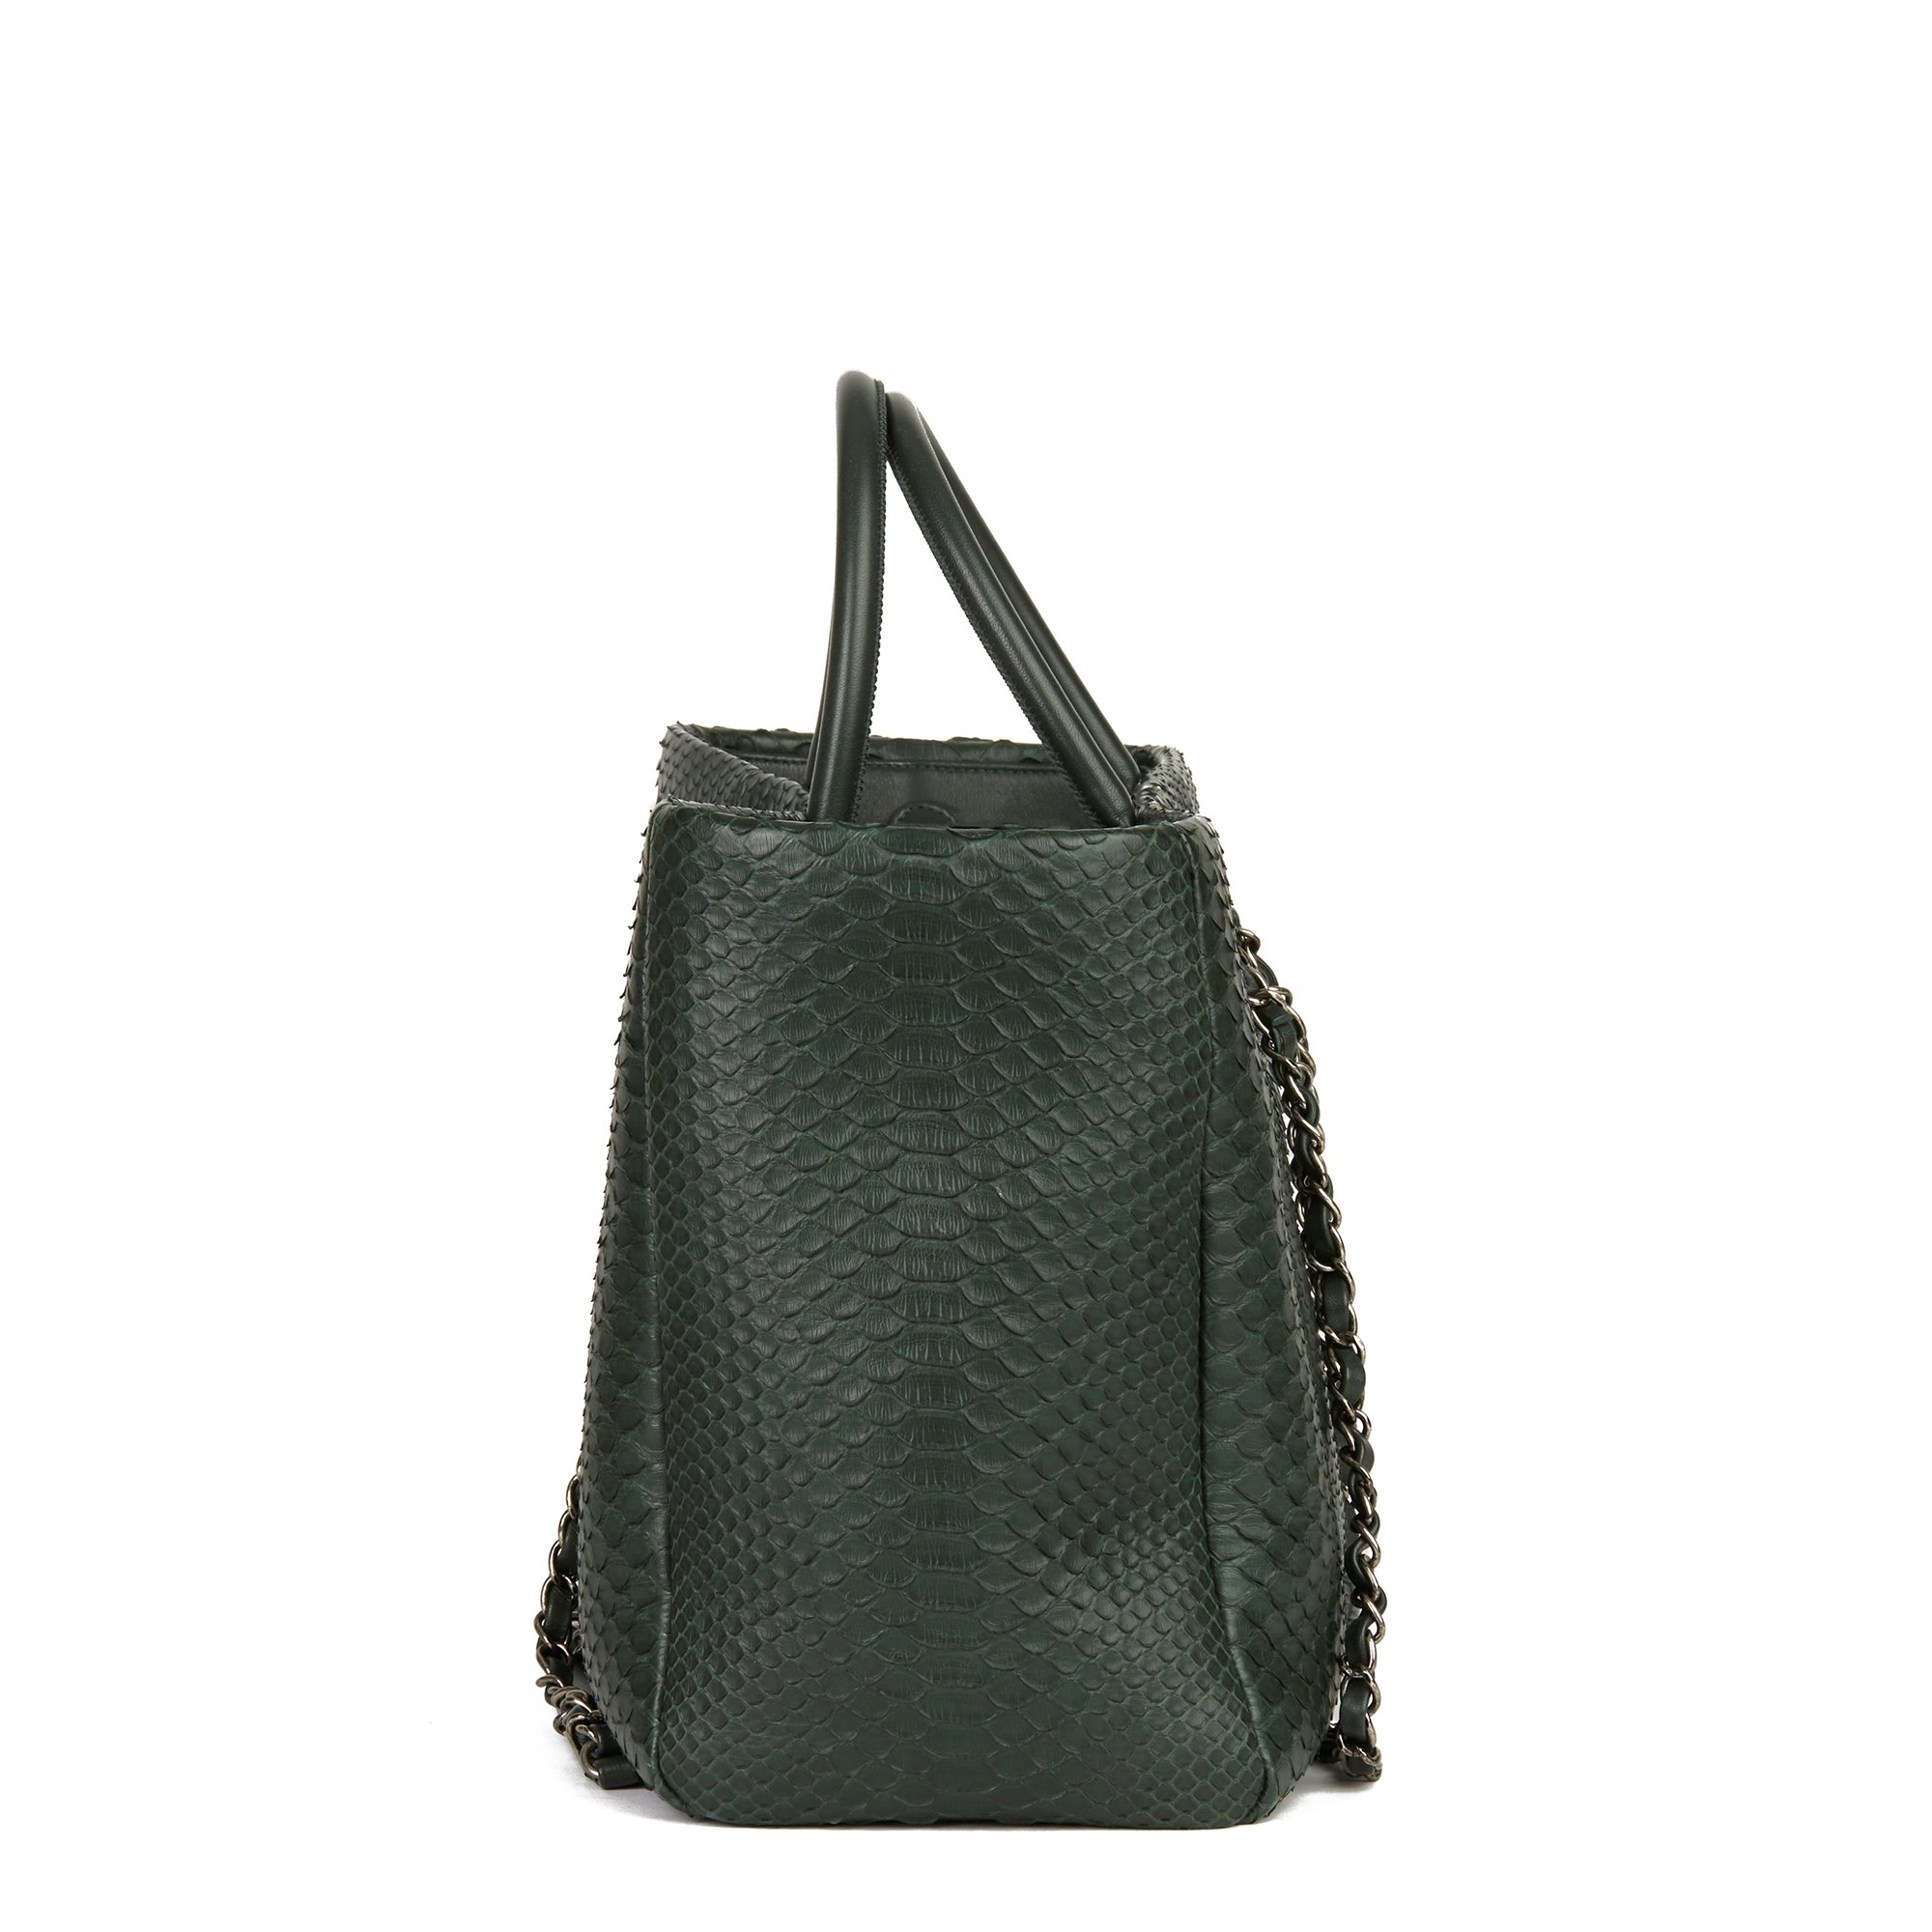 Chanel Dark Green Python Leather Shopping Tote